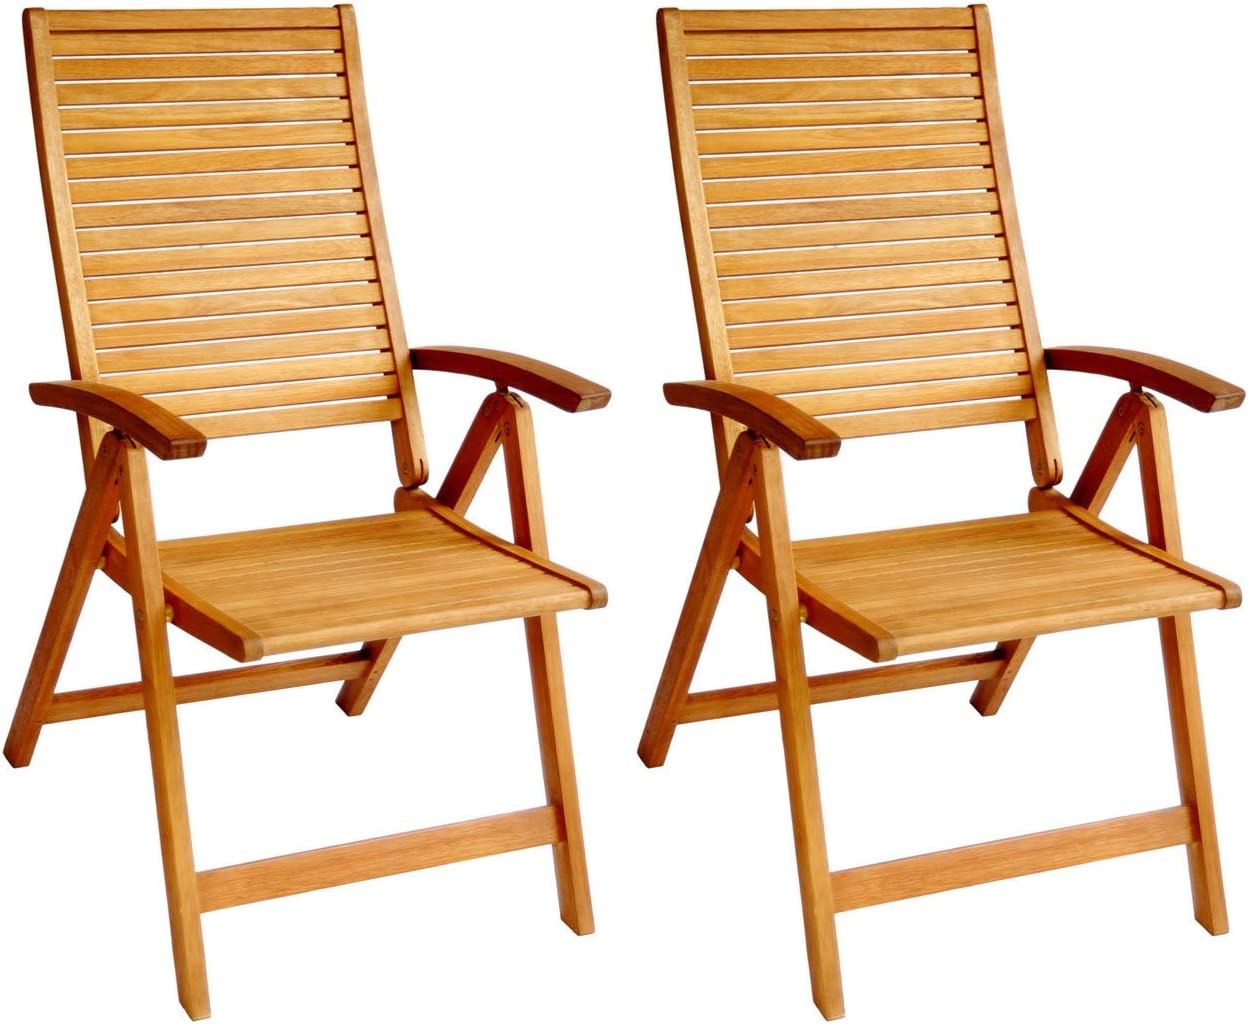 LuuNguyen 79001 Logan Outdoor Hardwood 5 Positions Reclining Folding Arm Chair, Natural Wood Finish, 2 Count